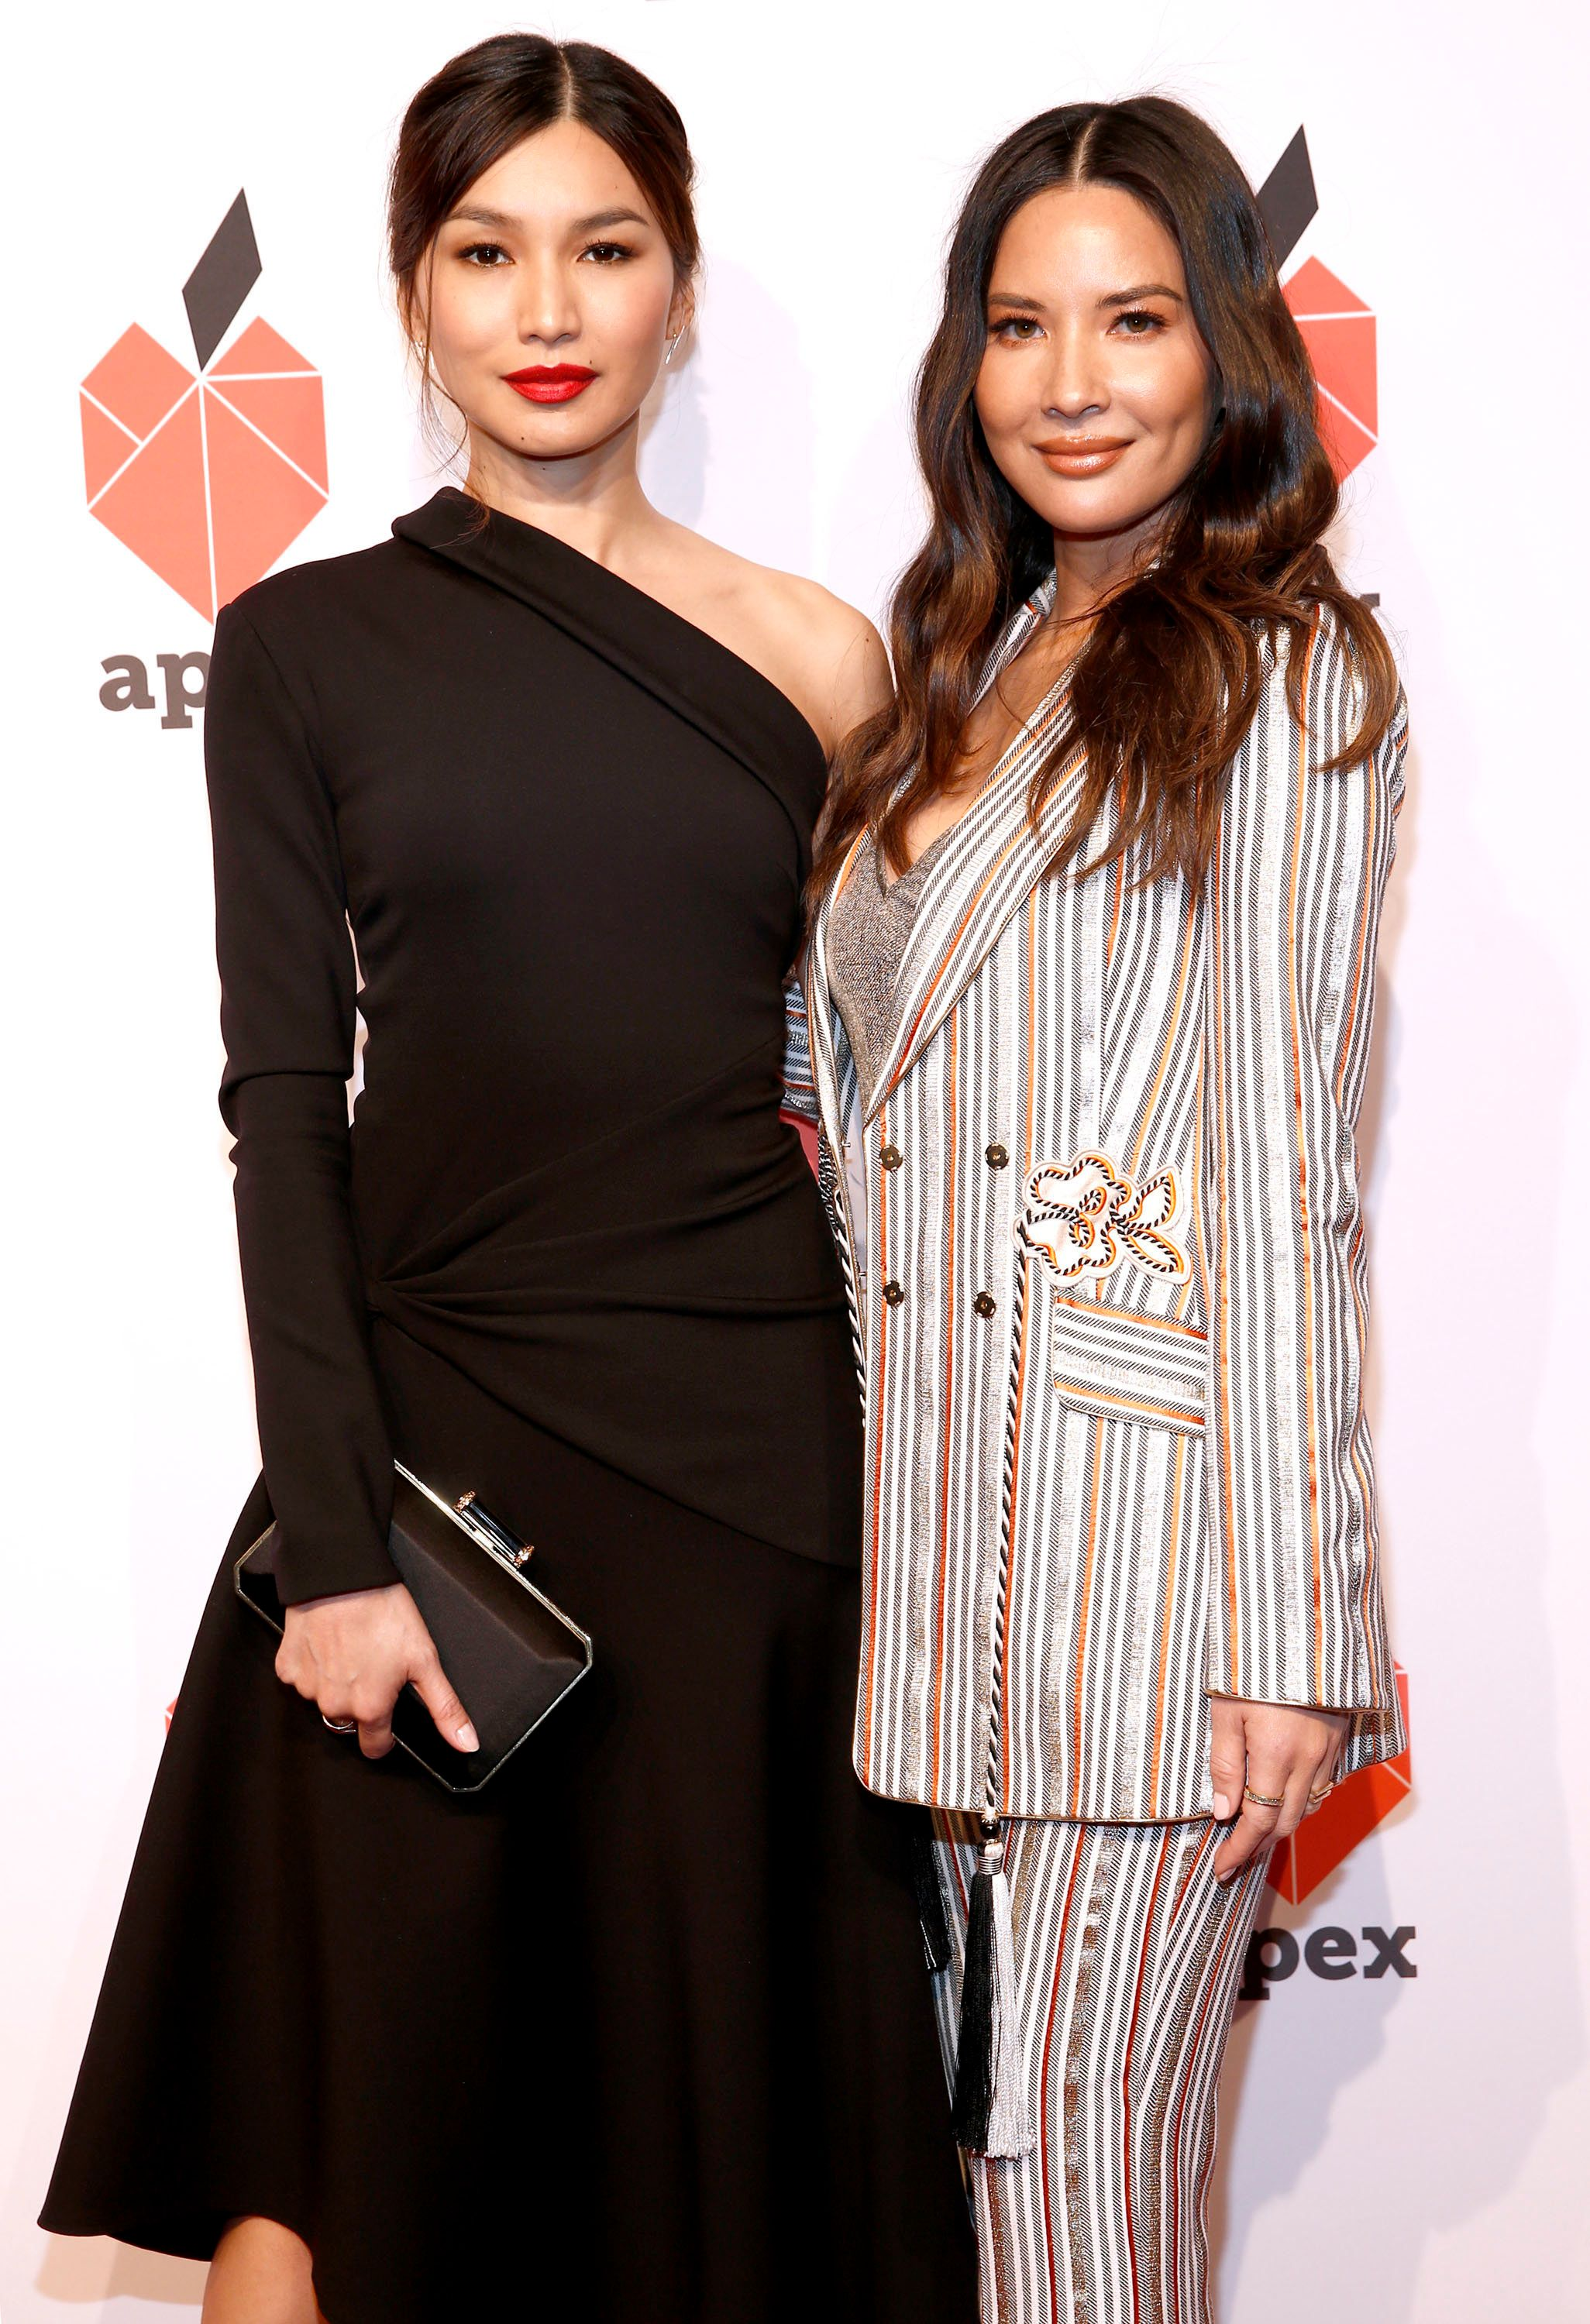 NEW YORK, NEW YORK - APRIL 17:   Gemma Chan and Olivia Munn attend the 27th Anniversary Inspiration Awards Gala at Cipriani Wall Street on April 17, 2019 in New York City. (Photo by Brian Ach/Getty Images  for APEX for Youth)